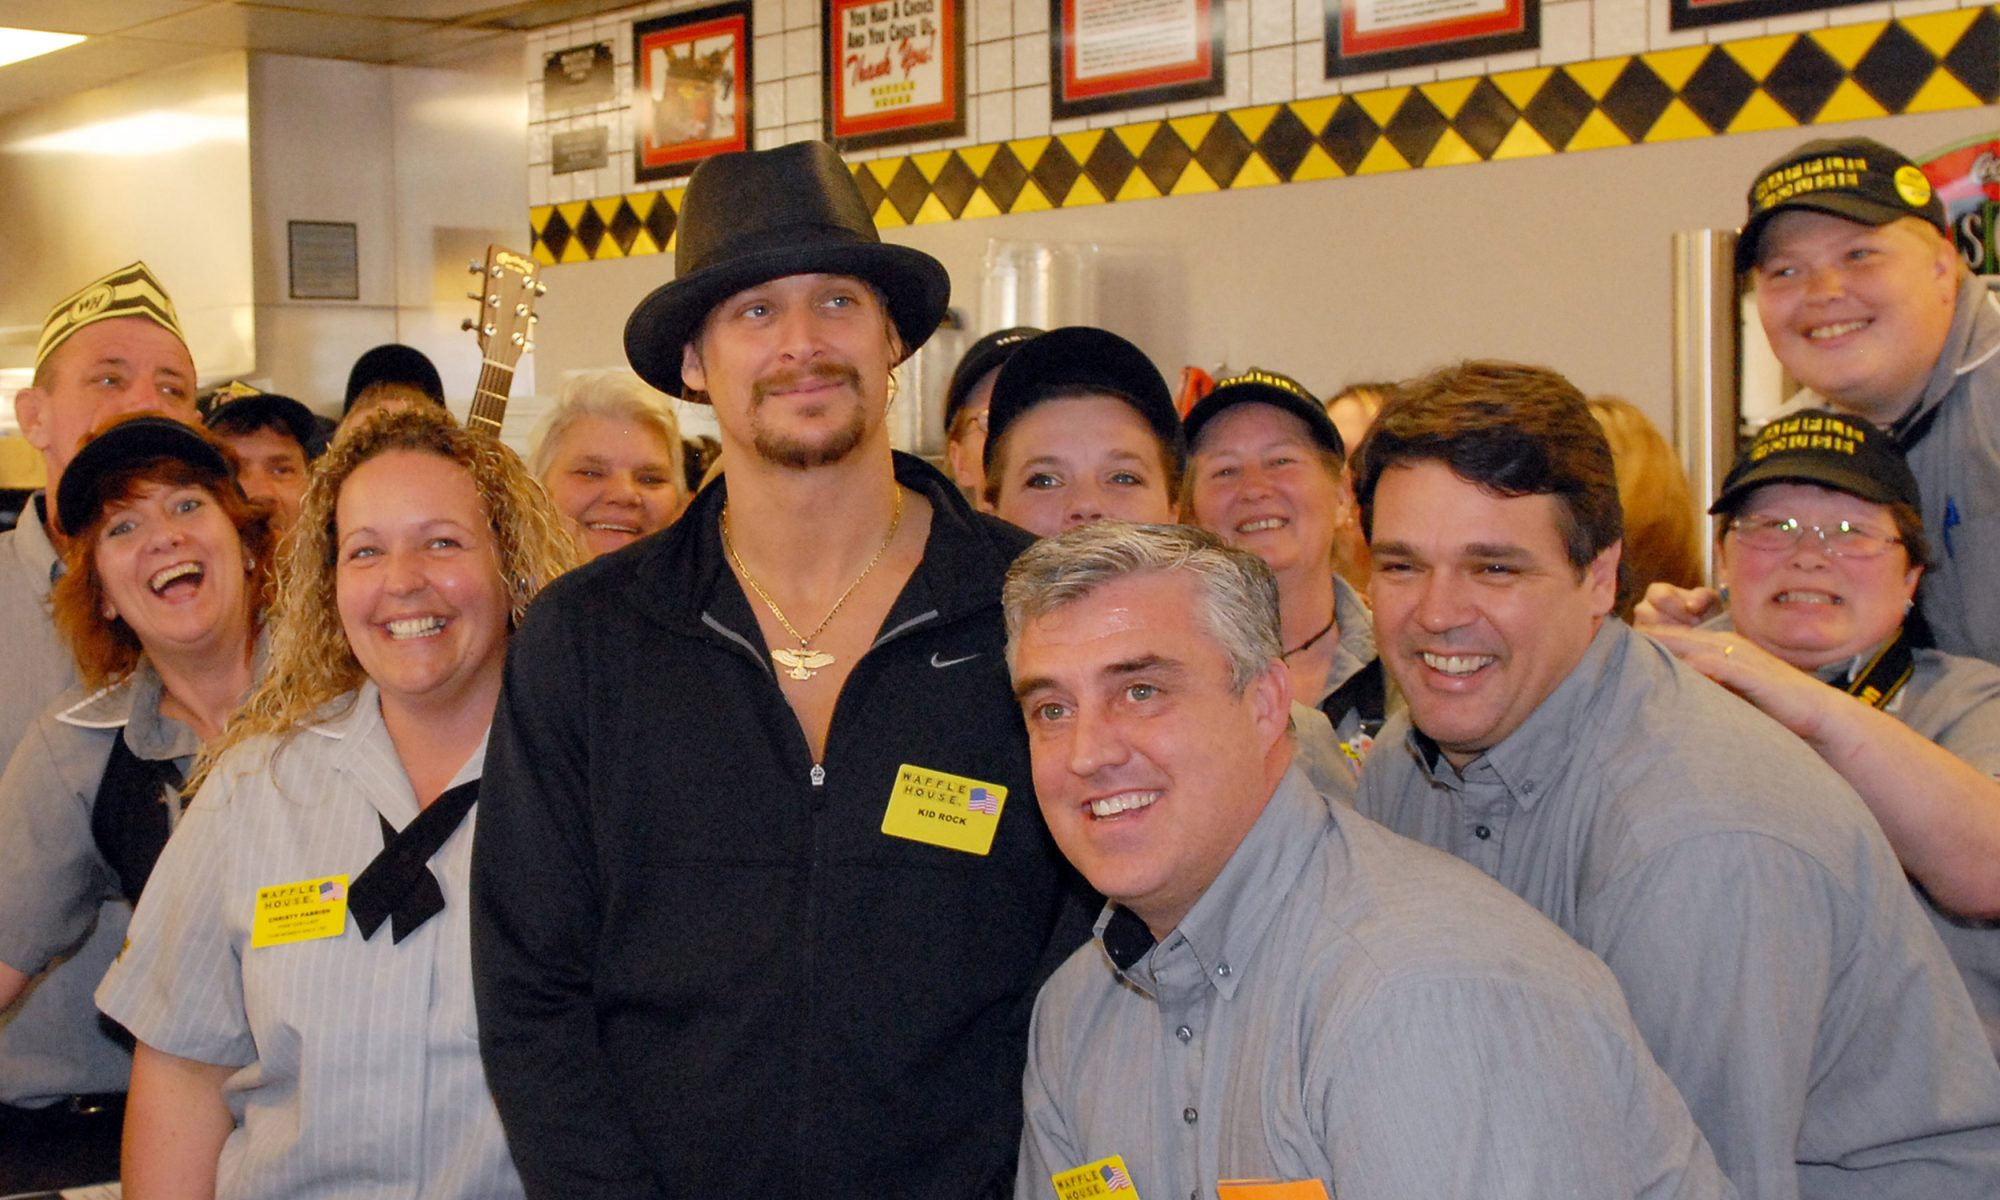 EC: 22 Celebrities Who Have Been Spotted at Waffle House